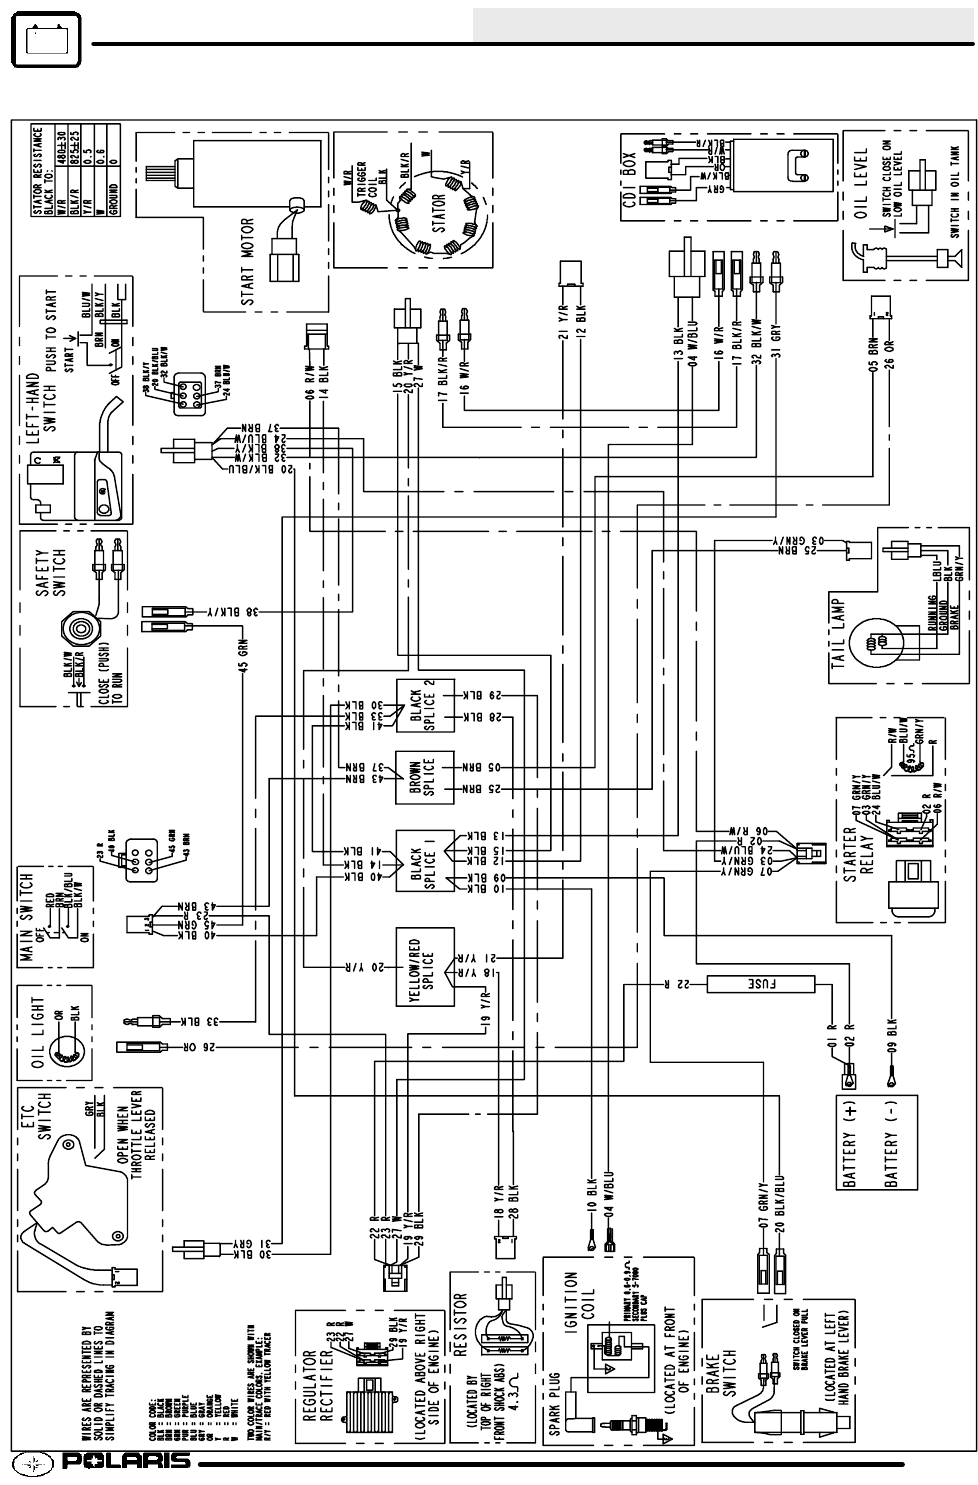 2001 Polaris Sportsman 90 Wiring Diagram Somurich Com